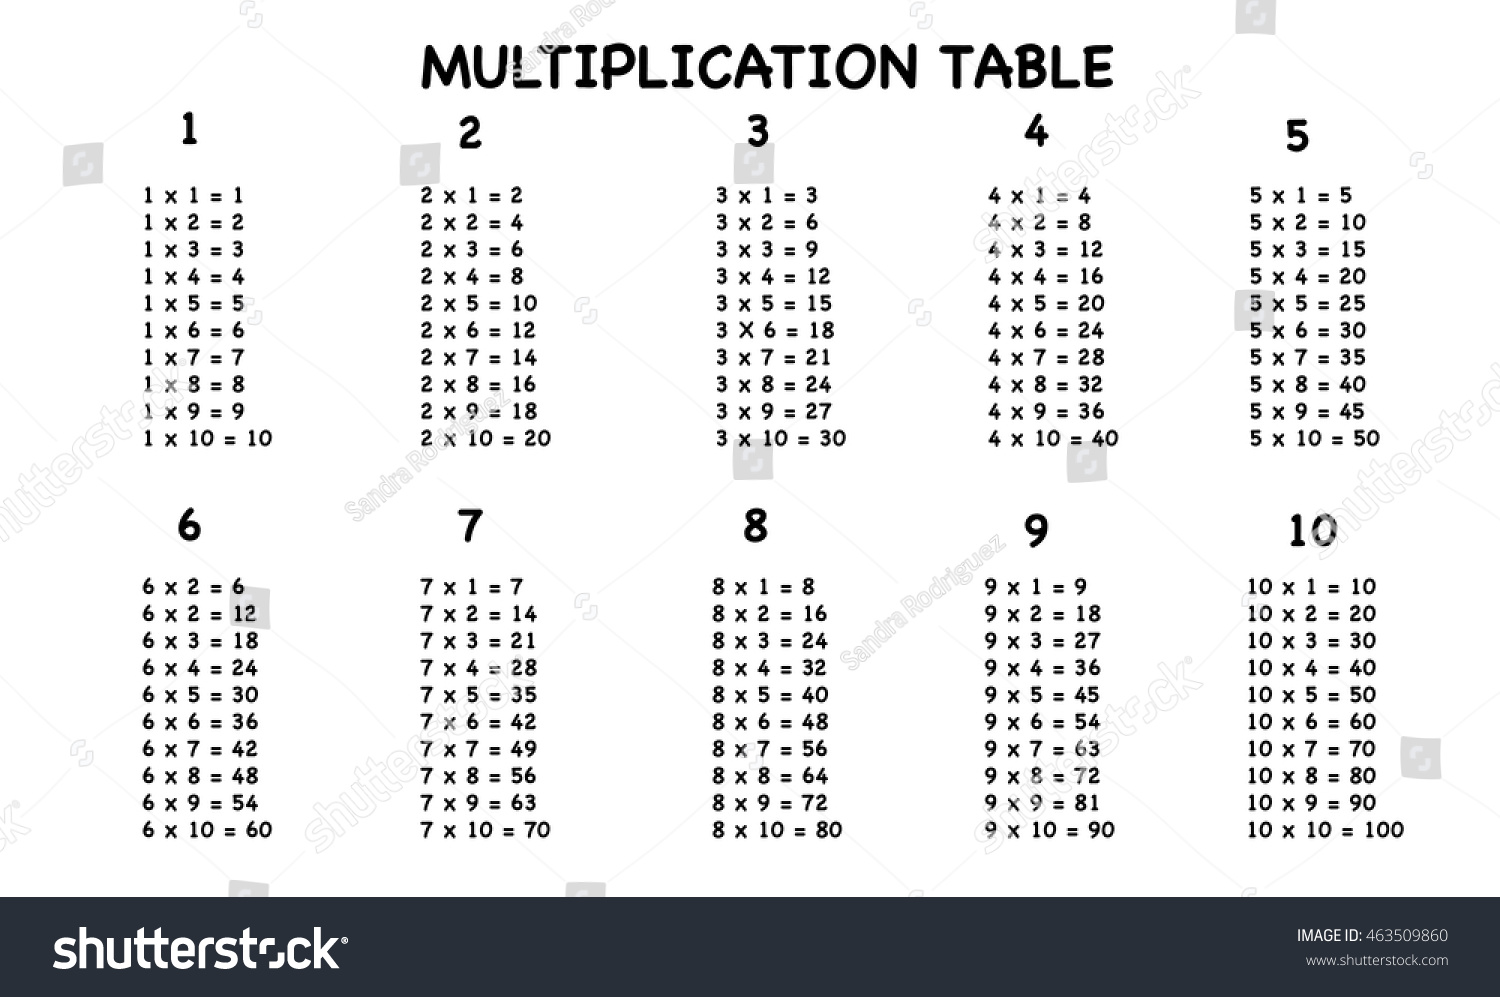 Multiplication table between 1 10 educational stock illustration multiplication table between 1 to 10 as educational material for primary school level students gamestrikefo Images